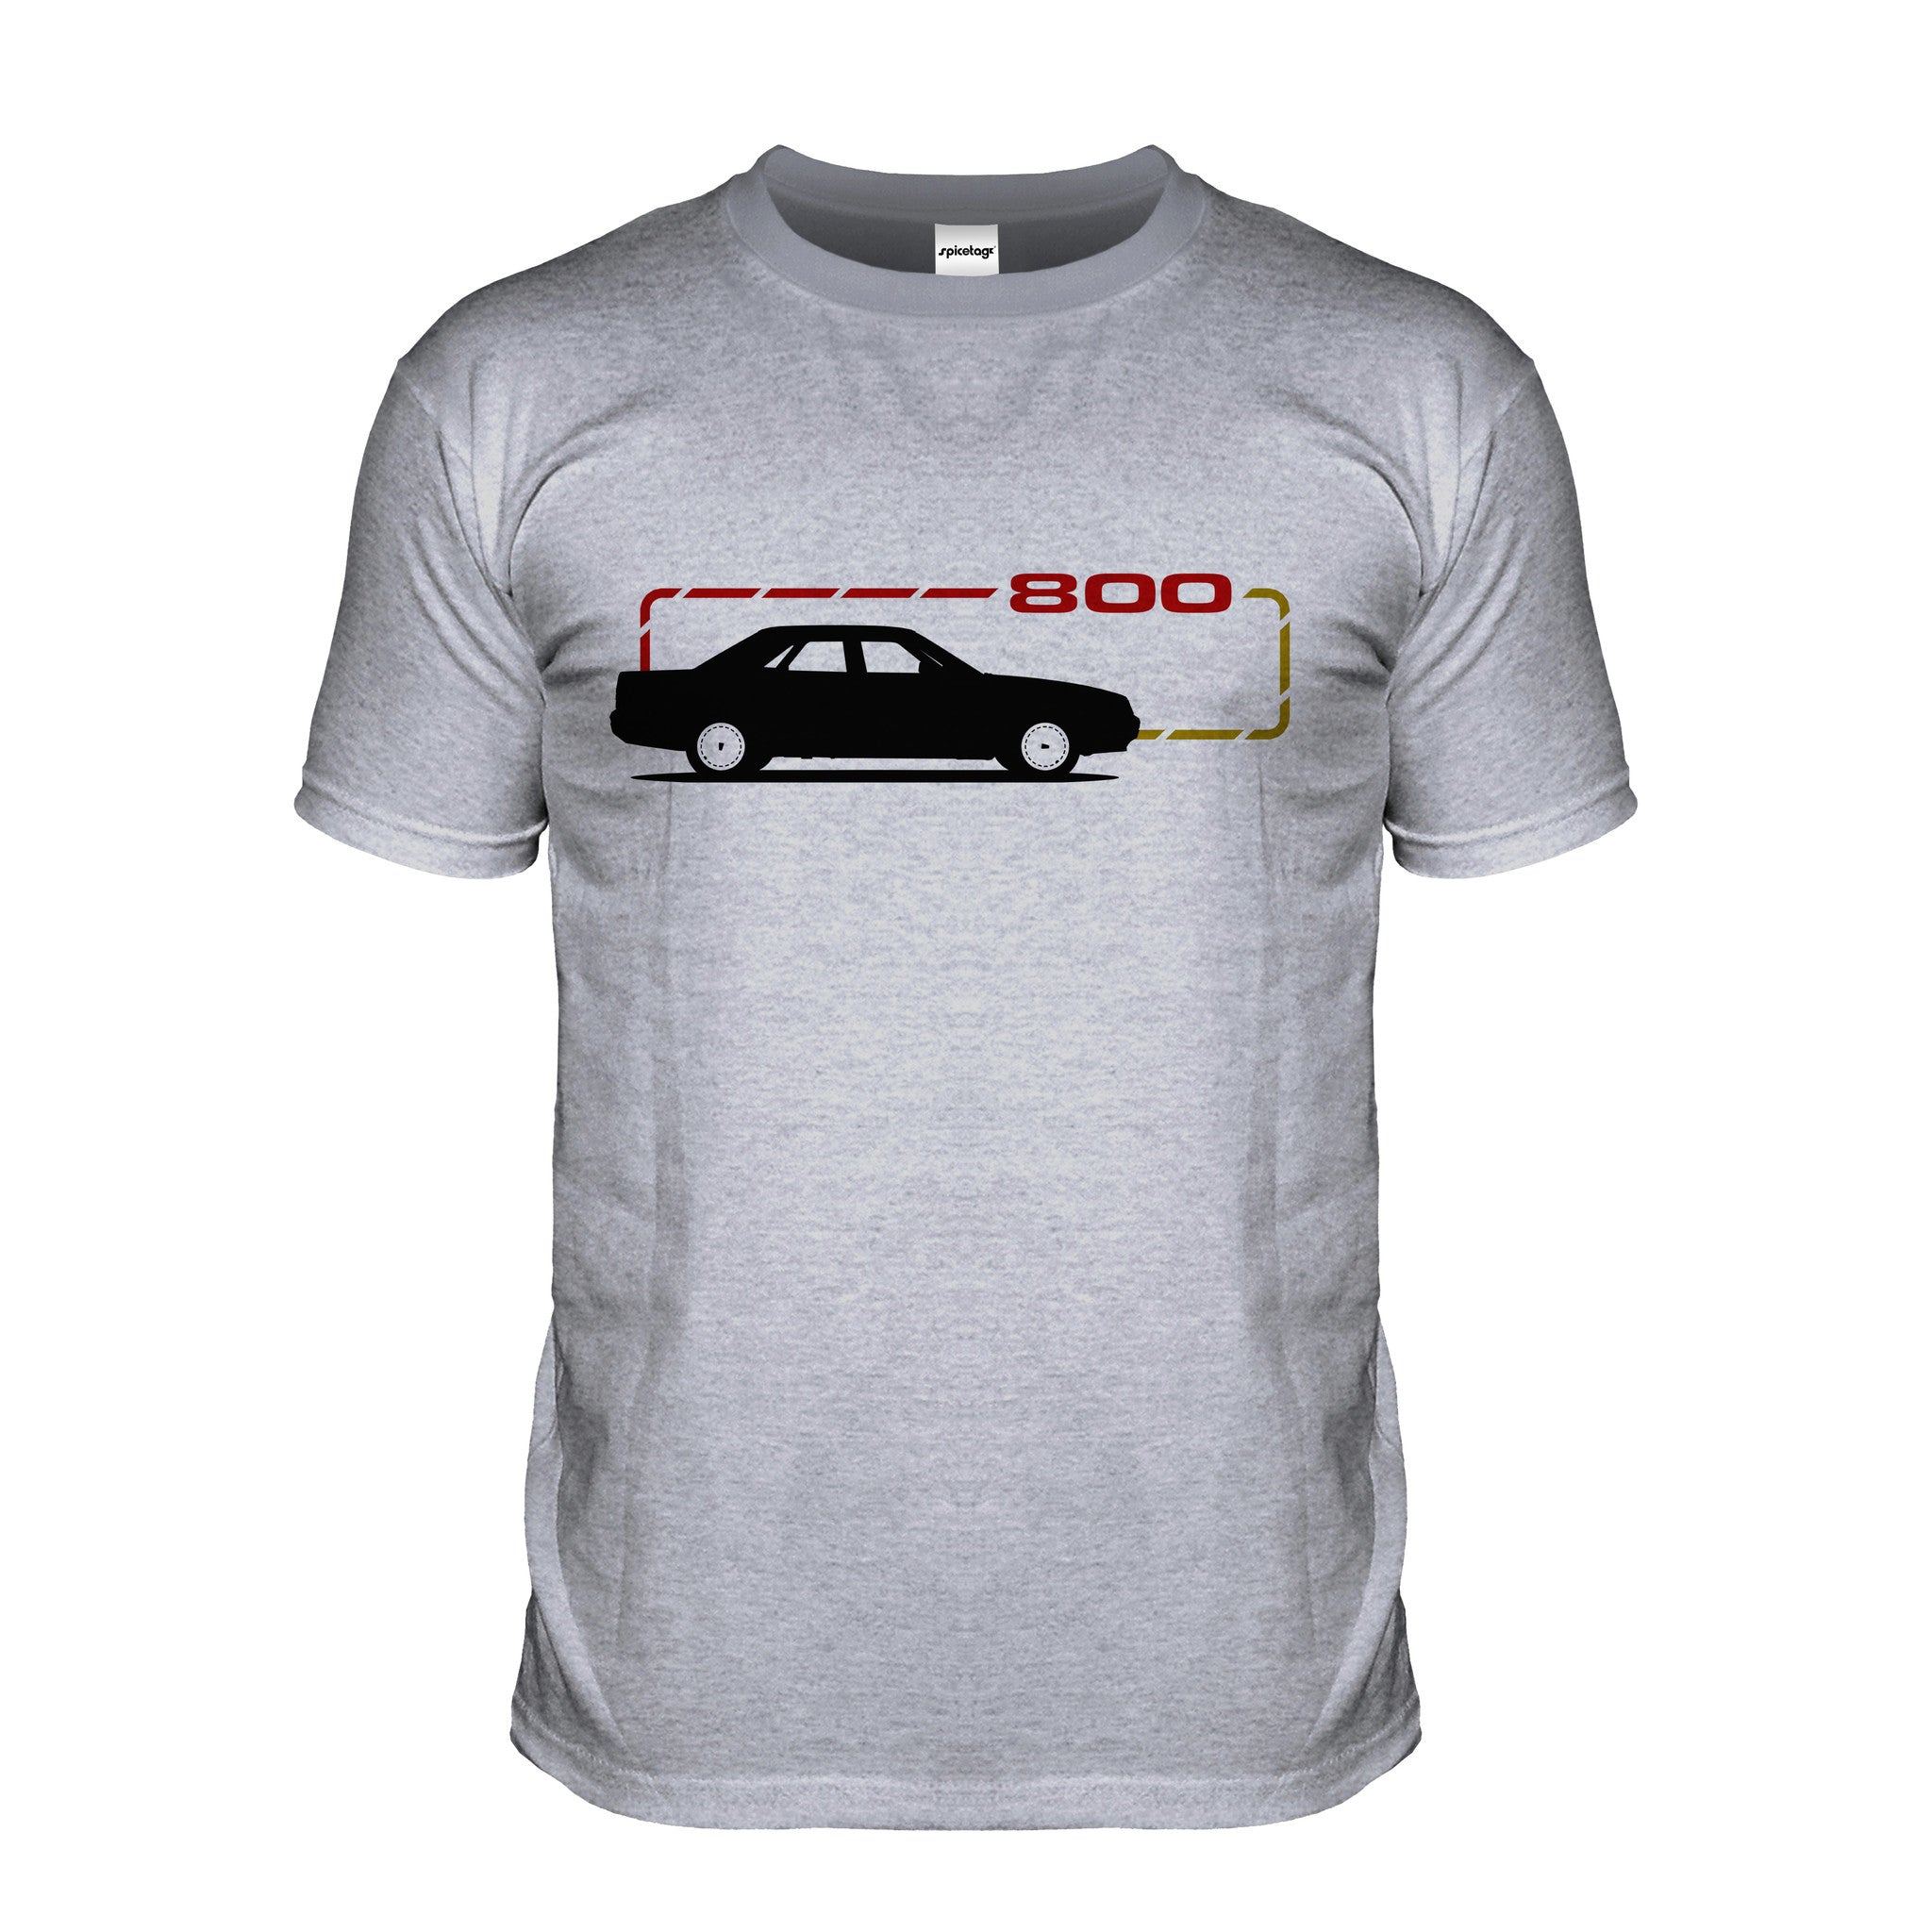 800 Saloon T-shirt